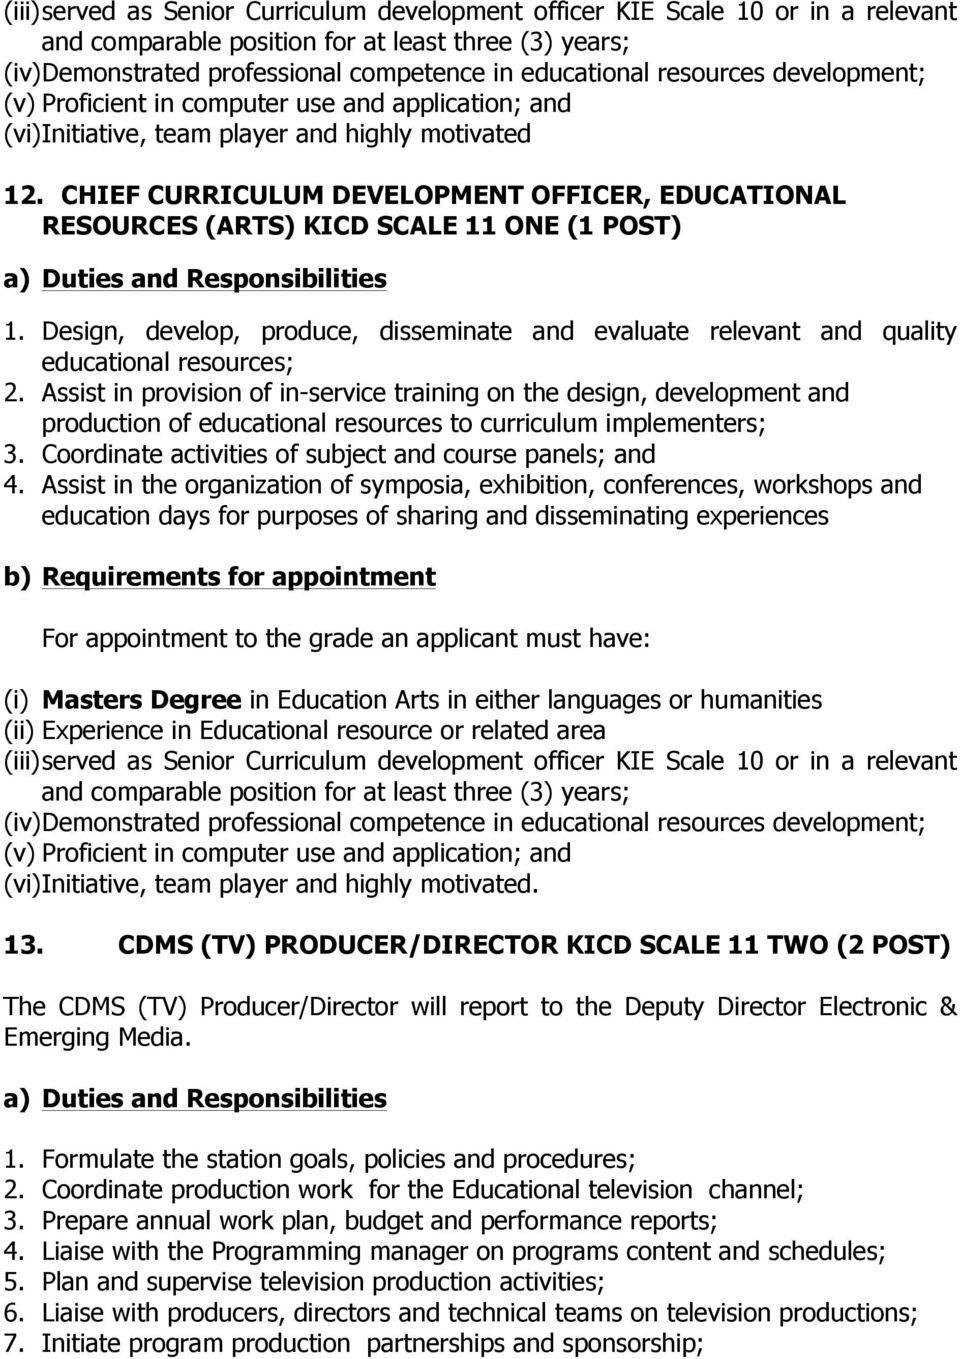 CHIEF CURRICULUM DEVELOPMENT OFFICER, EDUCATIONAL RESOURCES (ARTS) KICD SCALE 11 ONE (1 POST) 1. Design, develop, produce, disseminate and evaluate relevant and quality educational resources; 2.